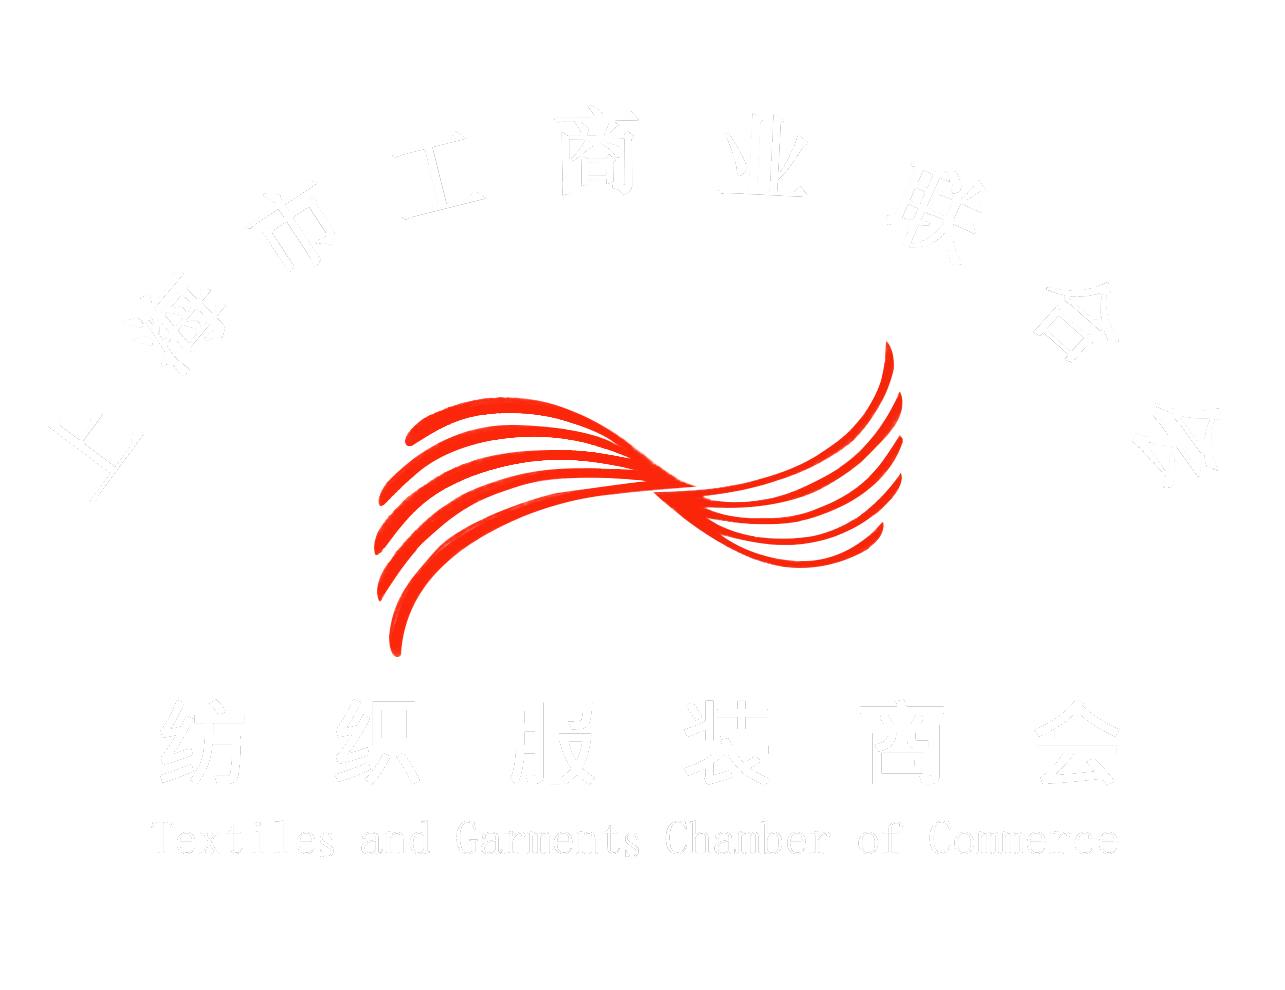 the-shanghai-federation-of-industry-commerce-textile-garment-chamber-of-commerce